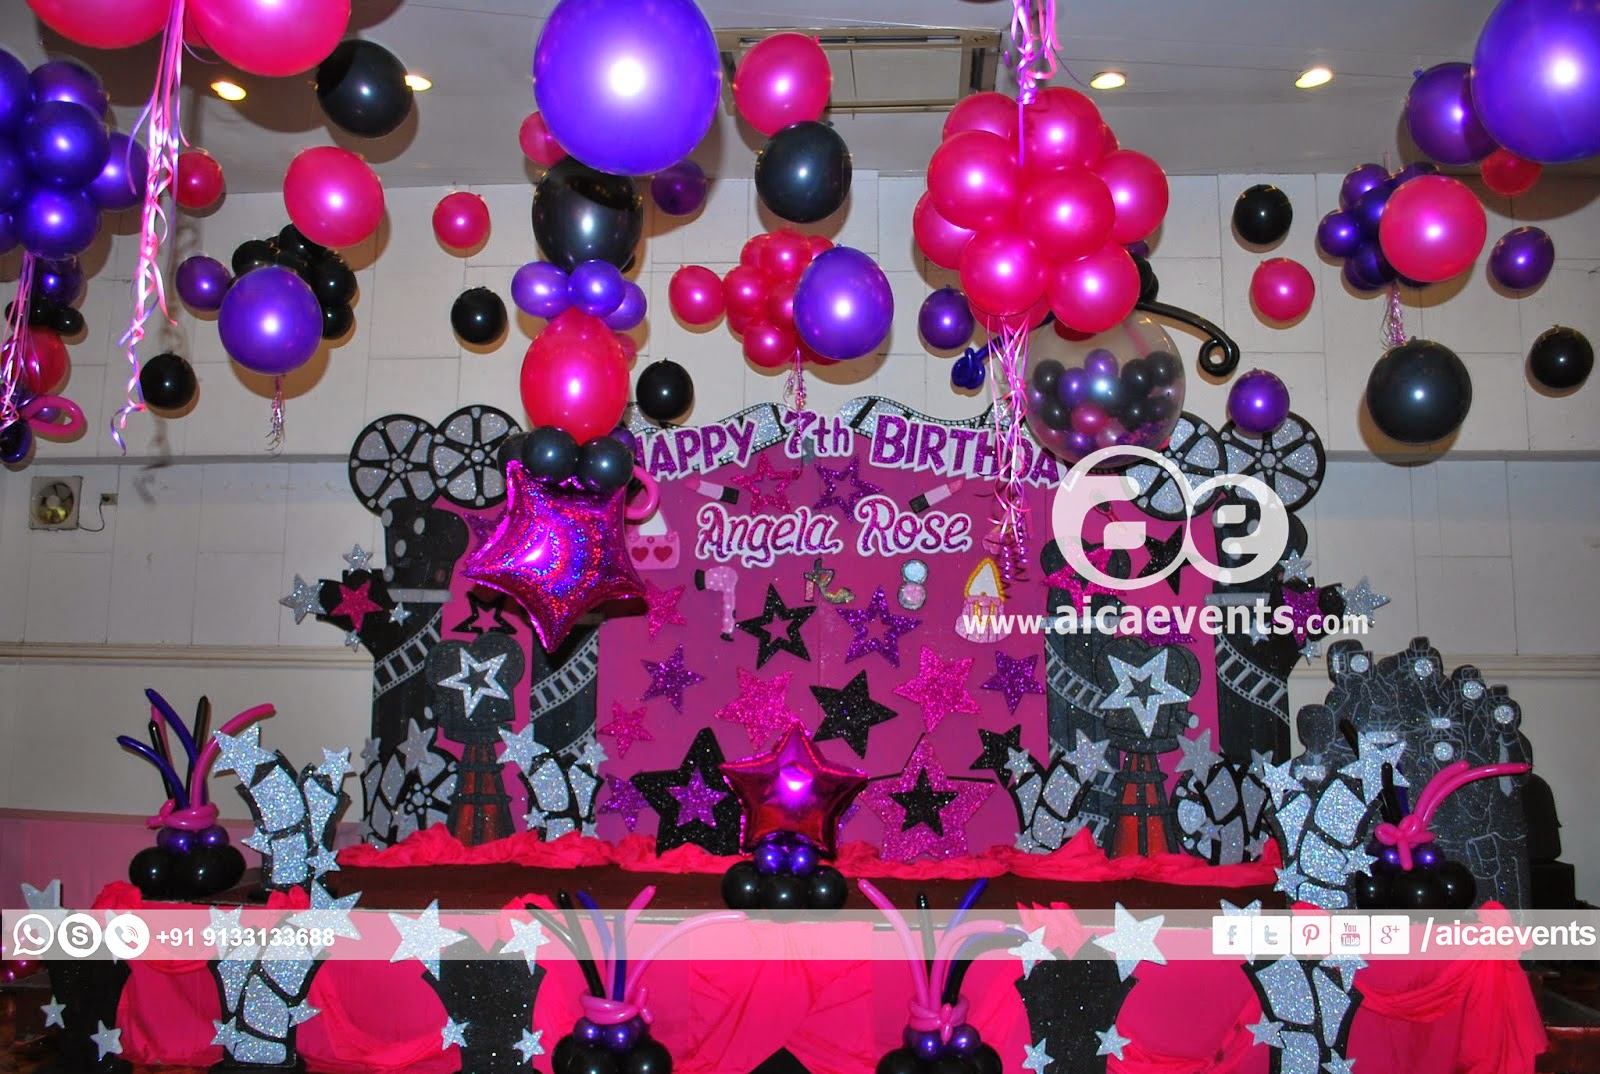 Aicaevents India Stars Theme Birthday Party Decorations